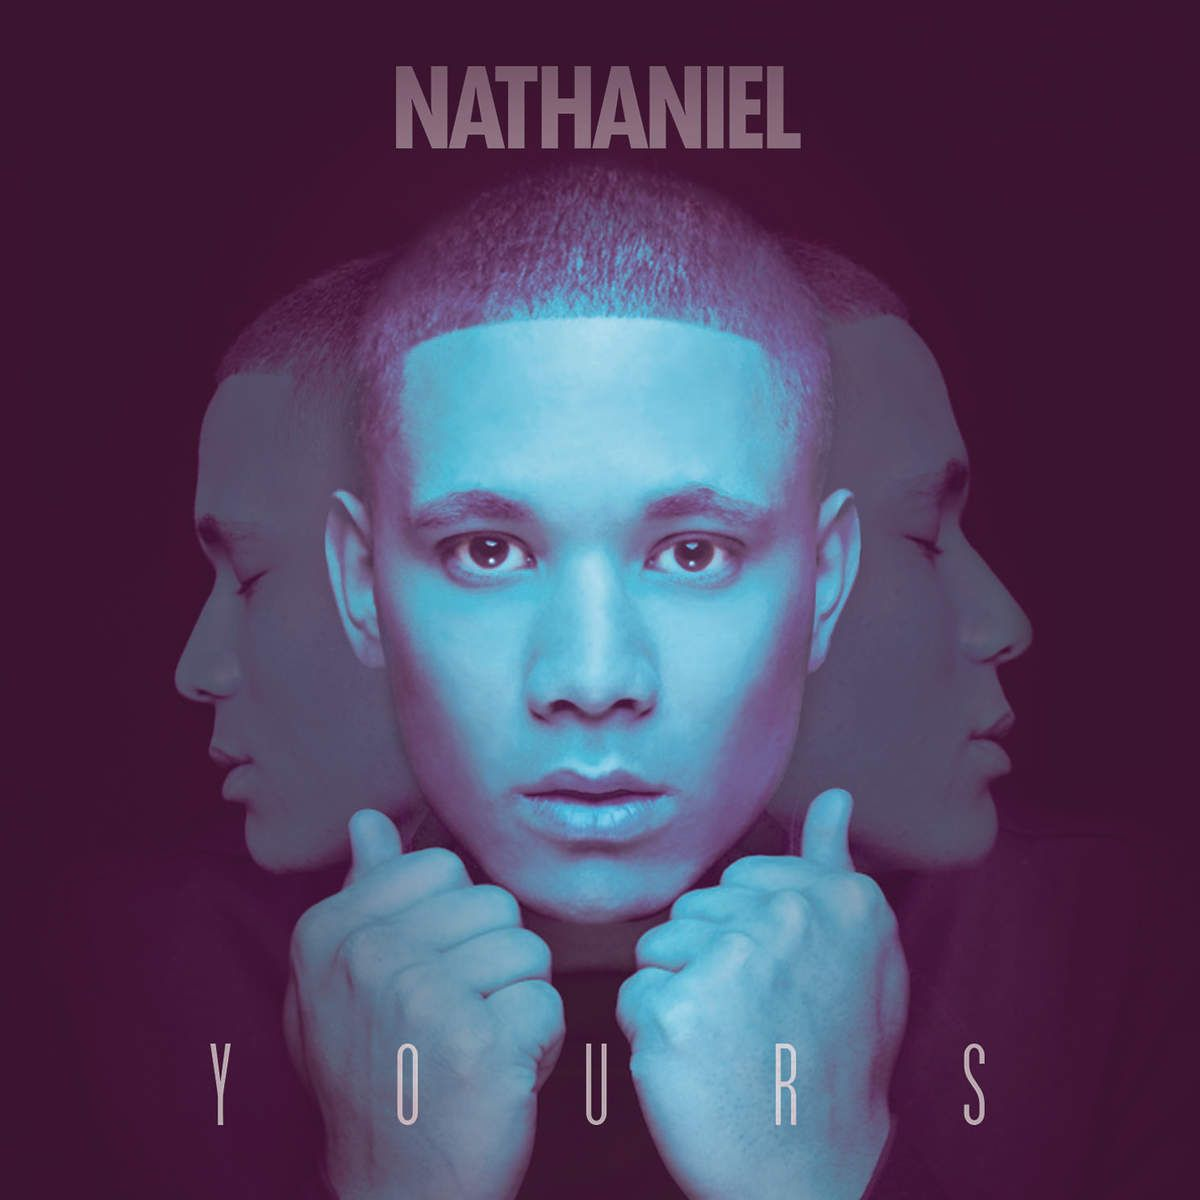 Nathaniel - Yours album cover